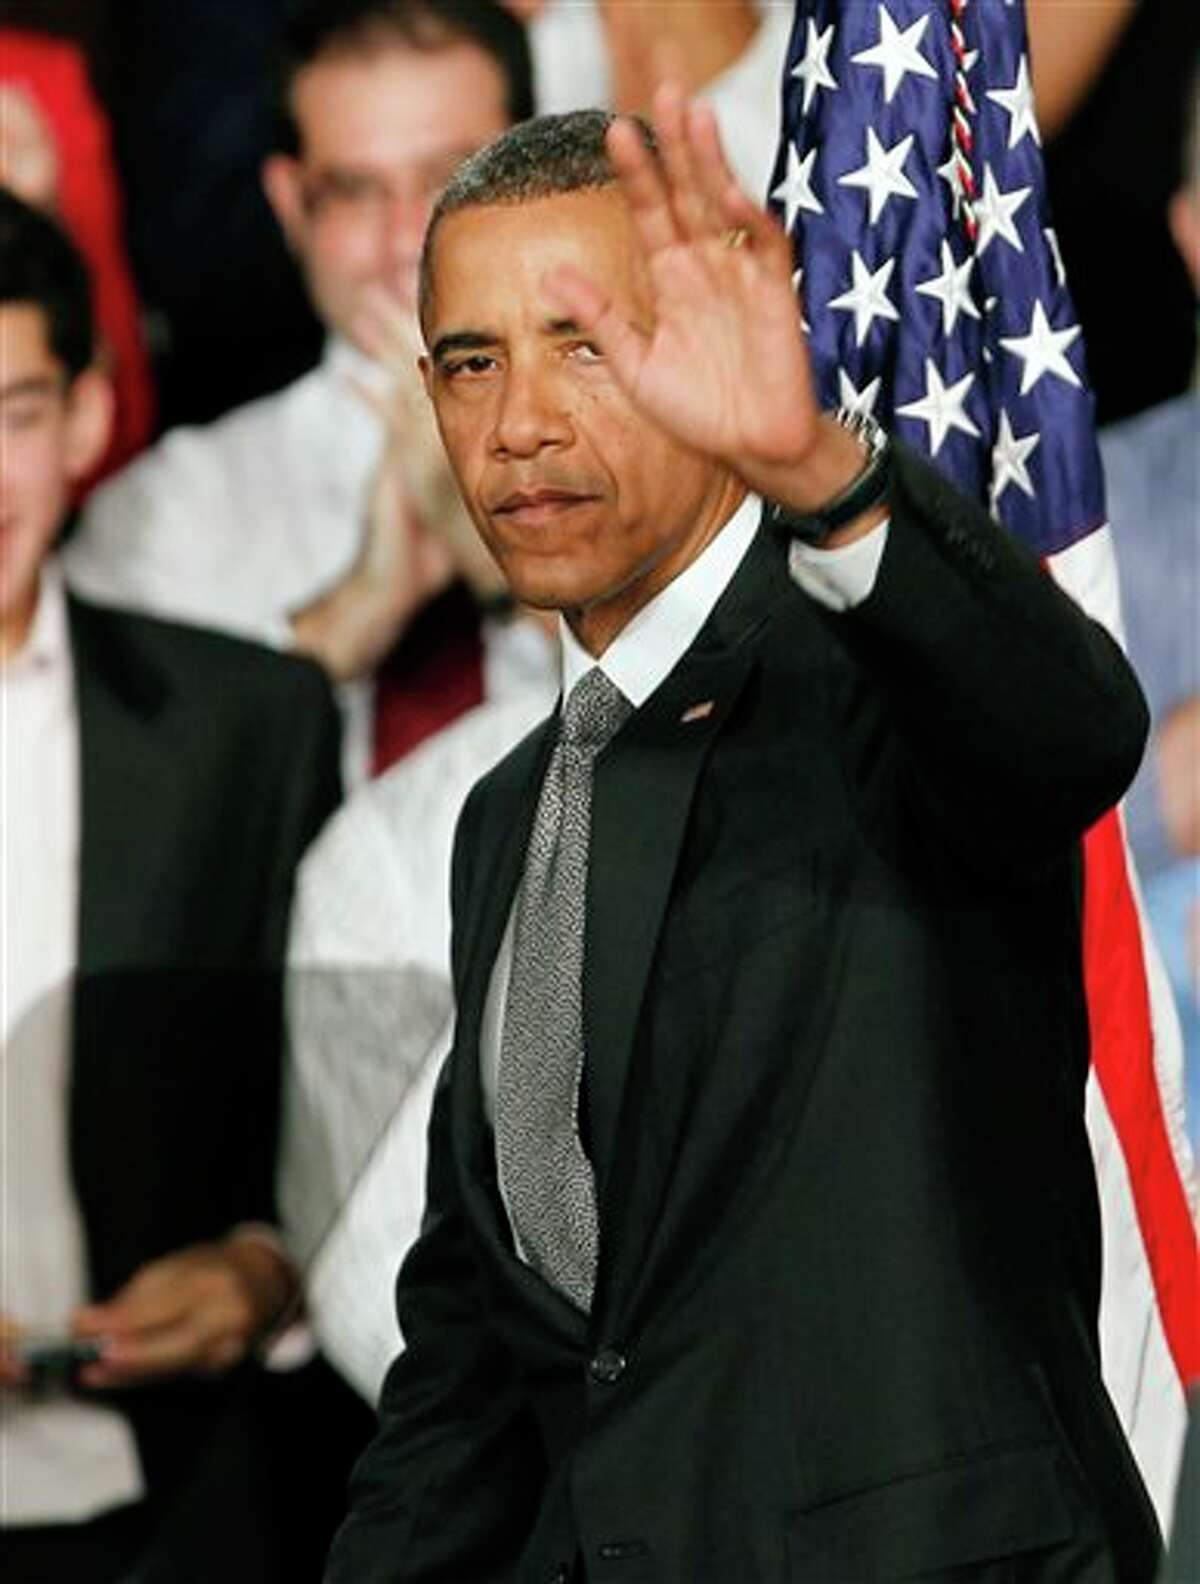 """President Barack Obama waves to supporters after talking about the events in Aurora, Colo., during a campaign stop in Fort Myers, Fla., Friday, July 19, 2012. Obama said the tragic movie theater shooting in Colorado that left 12 people dead is a reminder that life is fragile. He says the event """"reminds us of all the ways that we are united as one American family."""" (AP Photo/Alan Diaz)"""